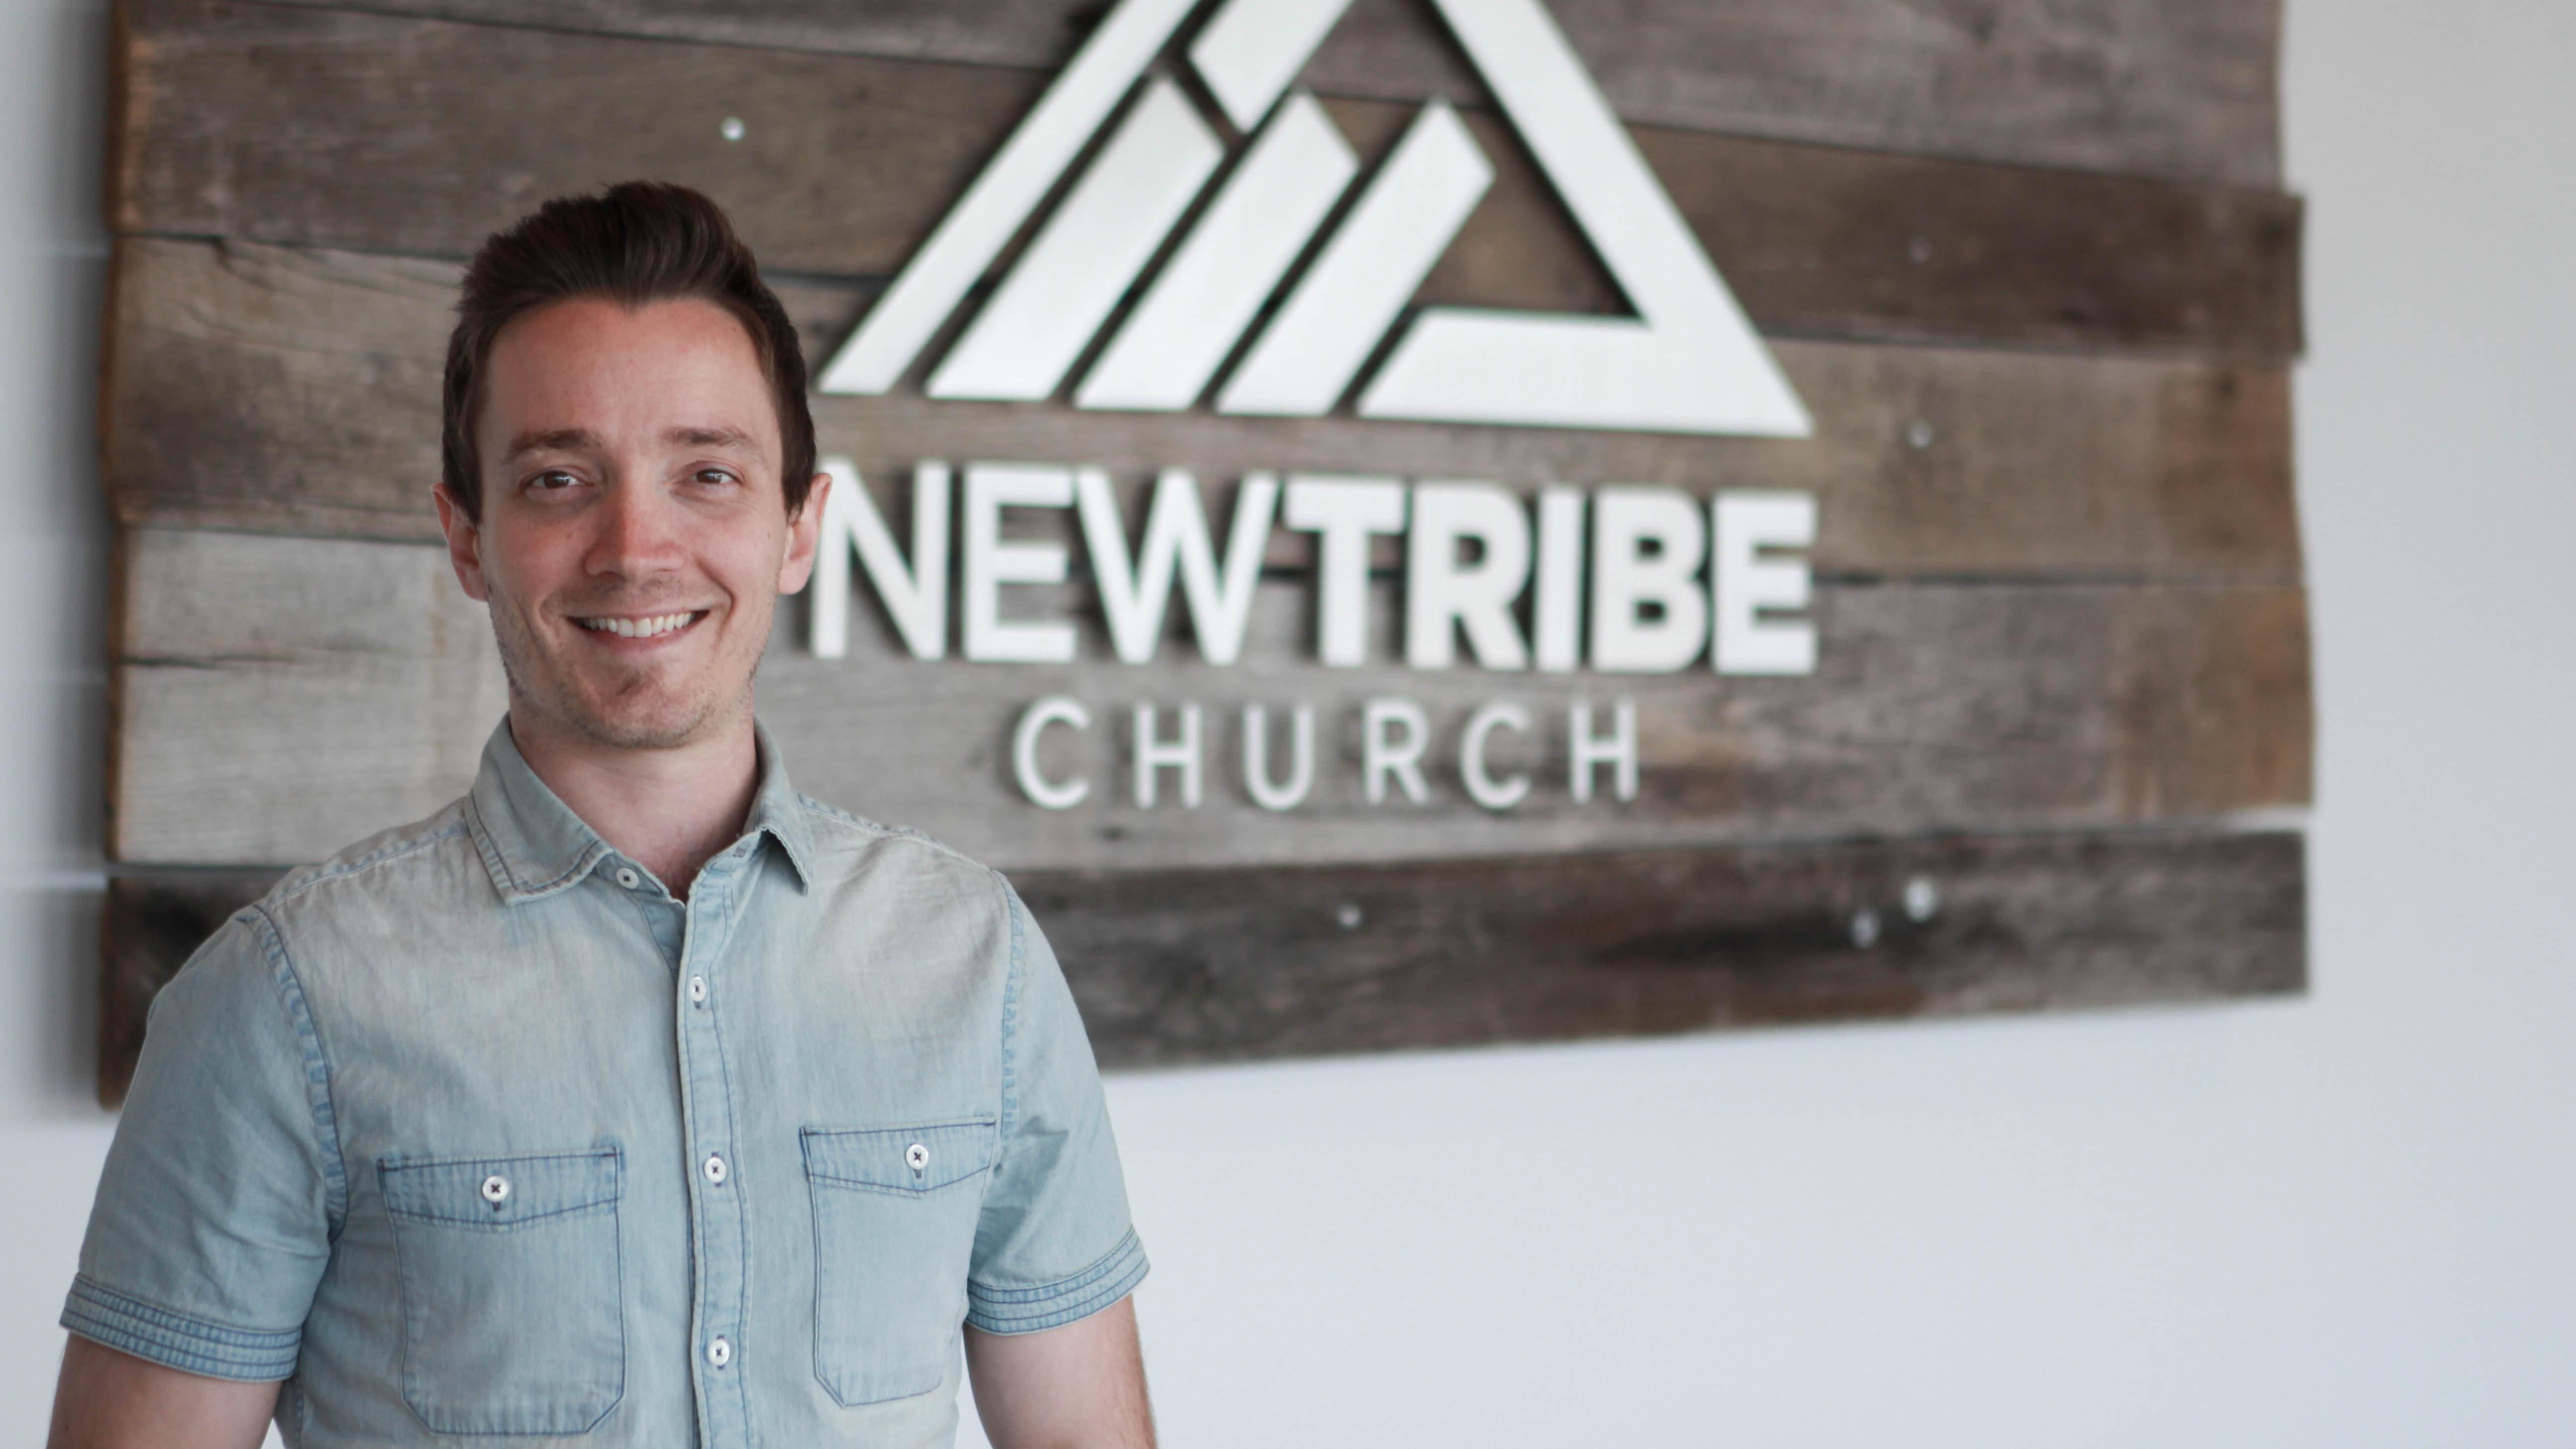 About Us – New Tribe Church